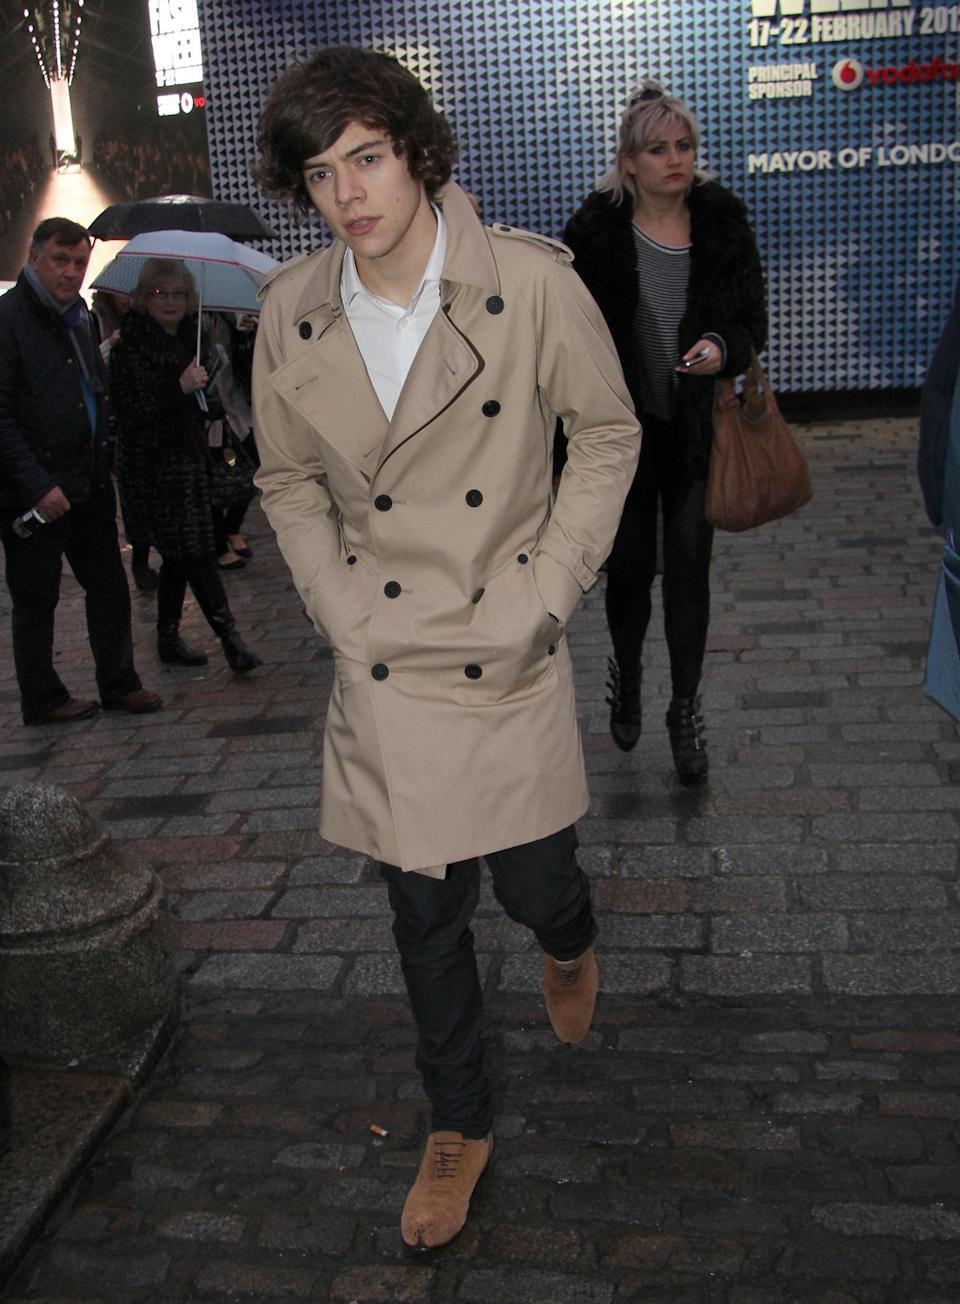 Harry hit up London Fashion Week in style in 2012 in a khaki trench, black skinnies, and tan suede shoes.